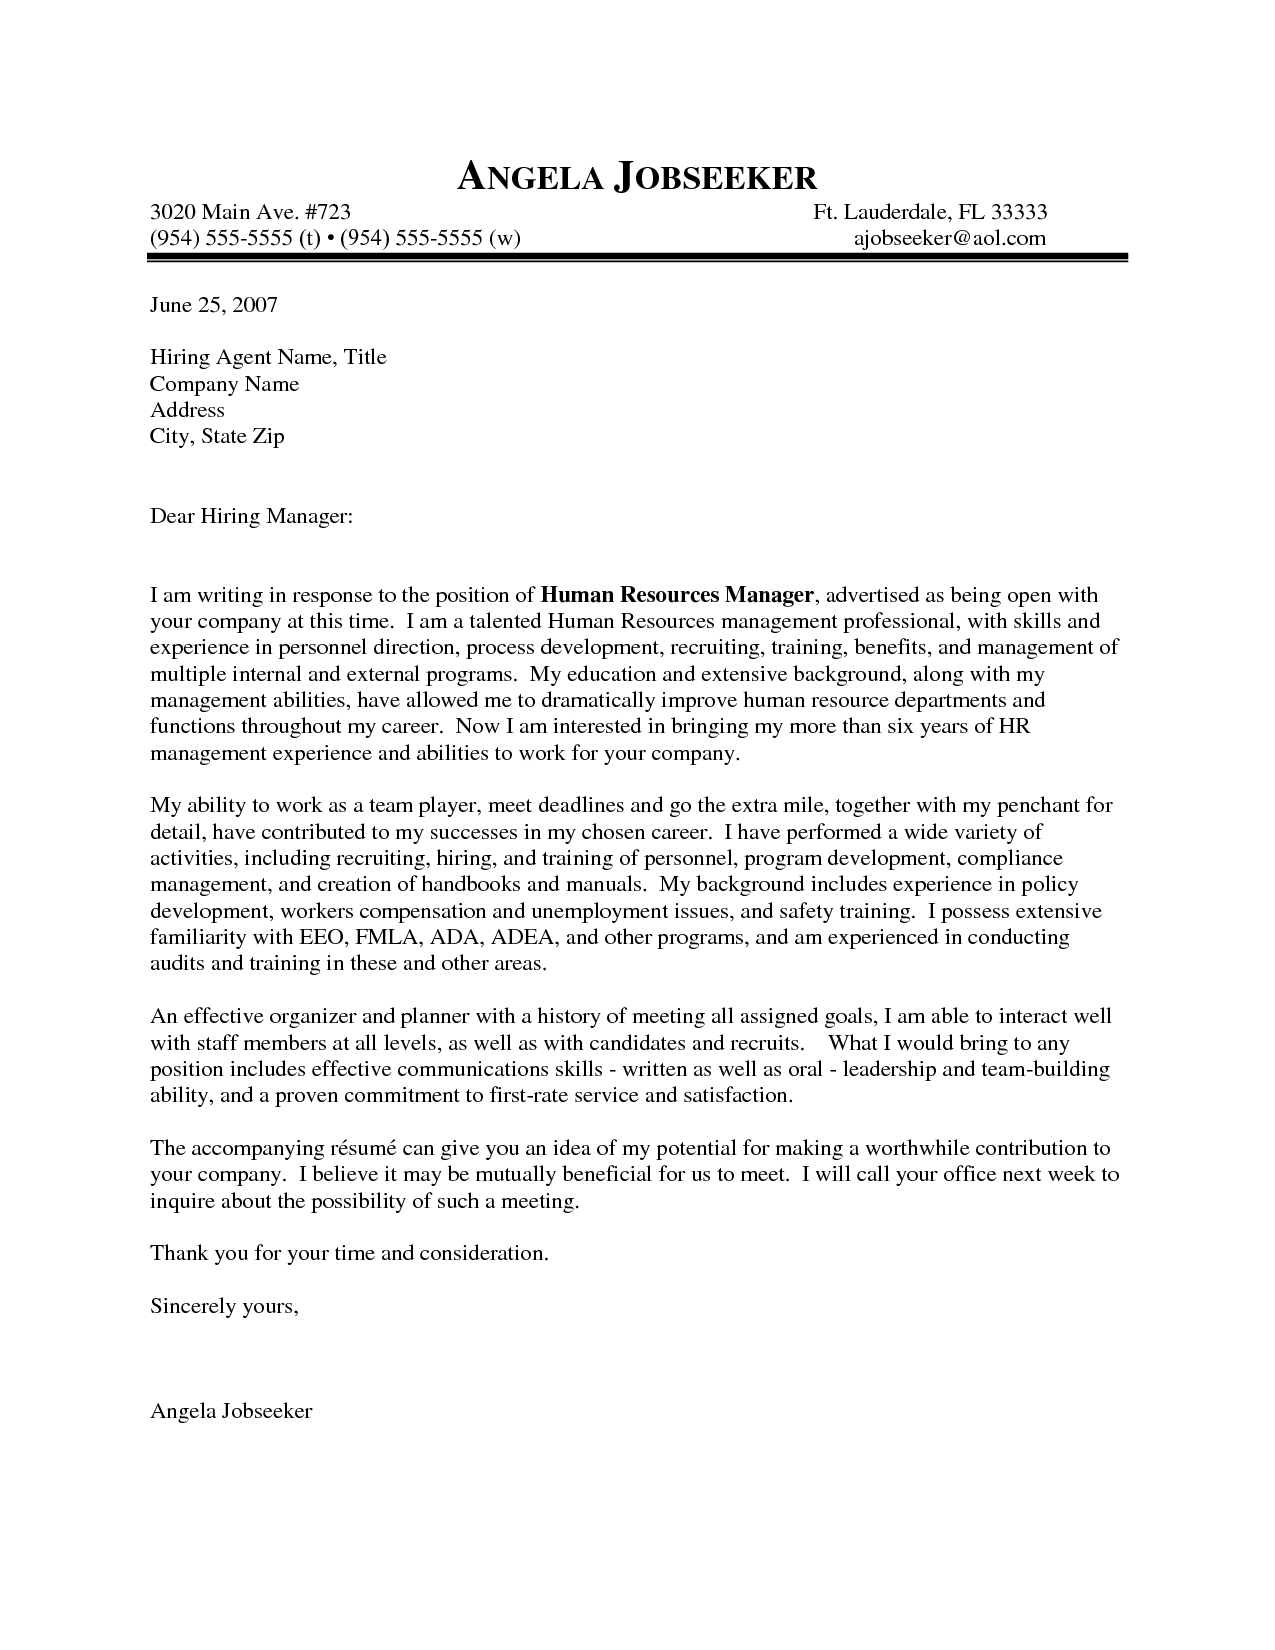 Resume Human Resources Cover Letters For Resumes outstanding cover letter examples hr manager example